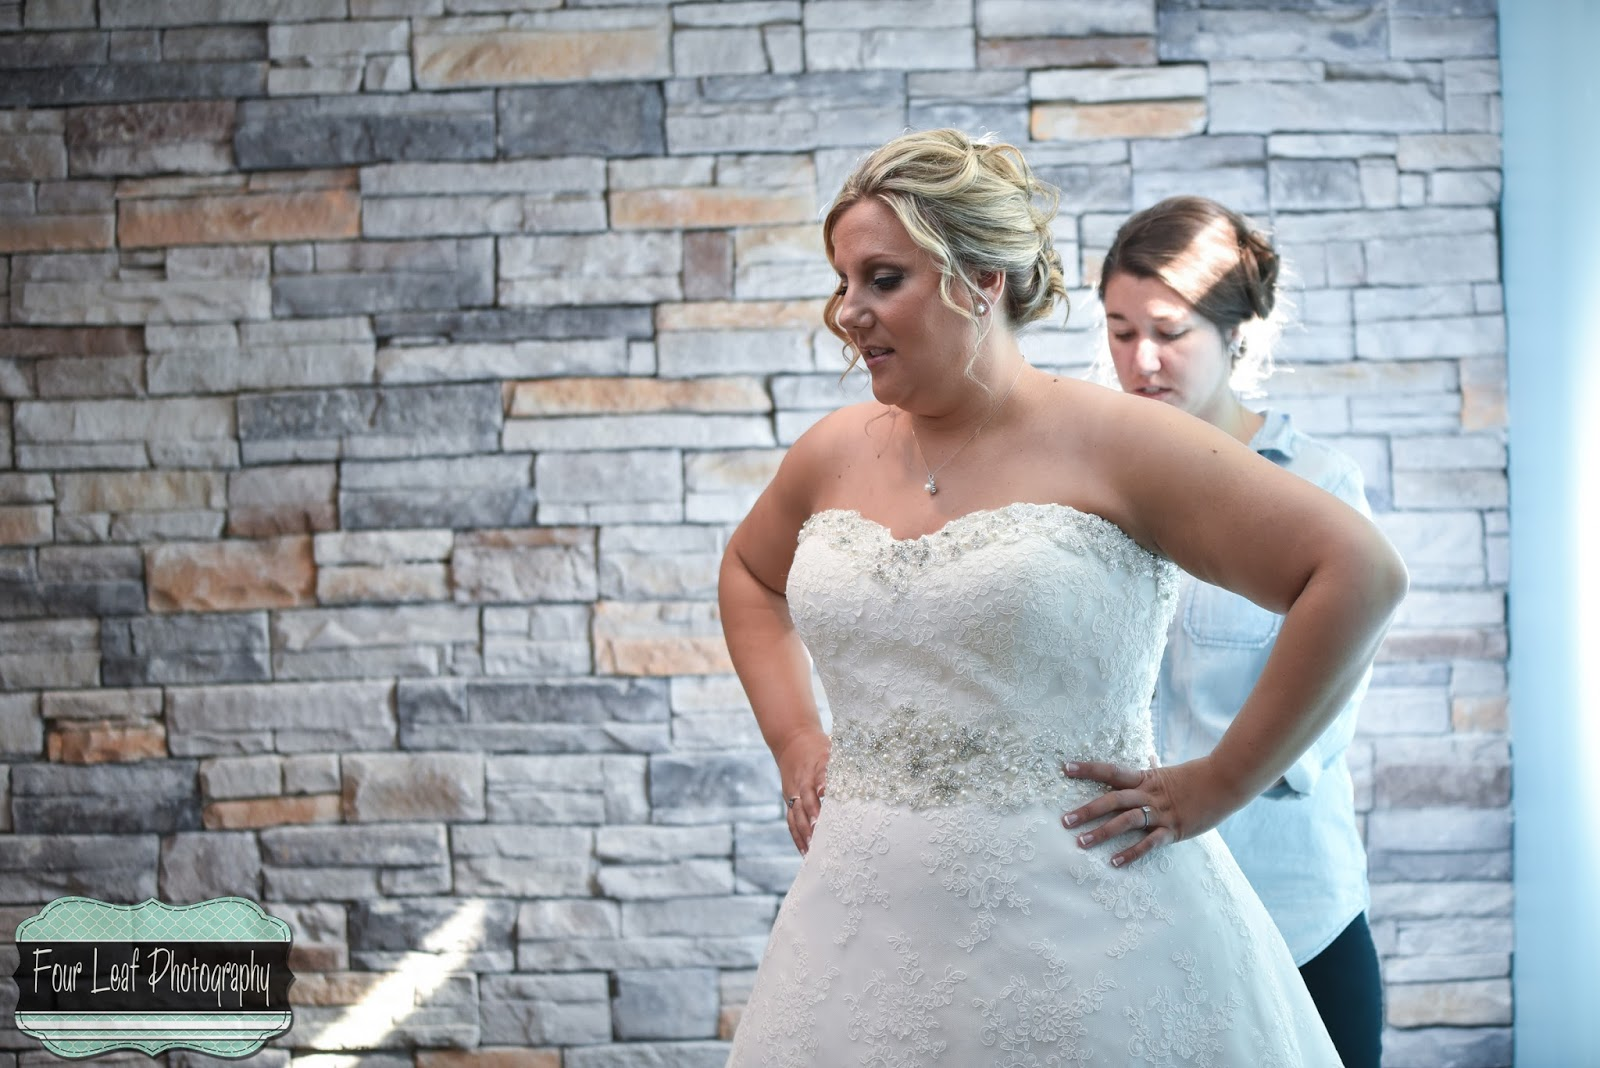 Four Leaf Photography - Louisville Wedding Photographer: Louisville ...